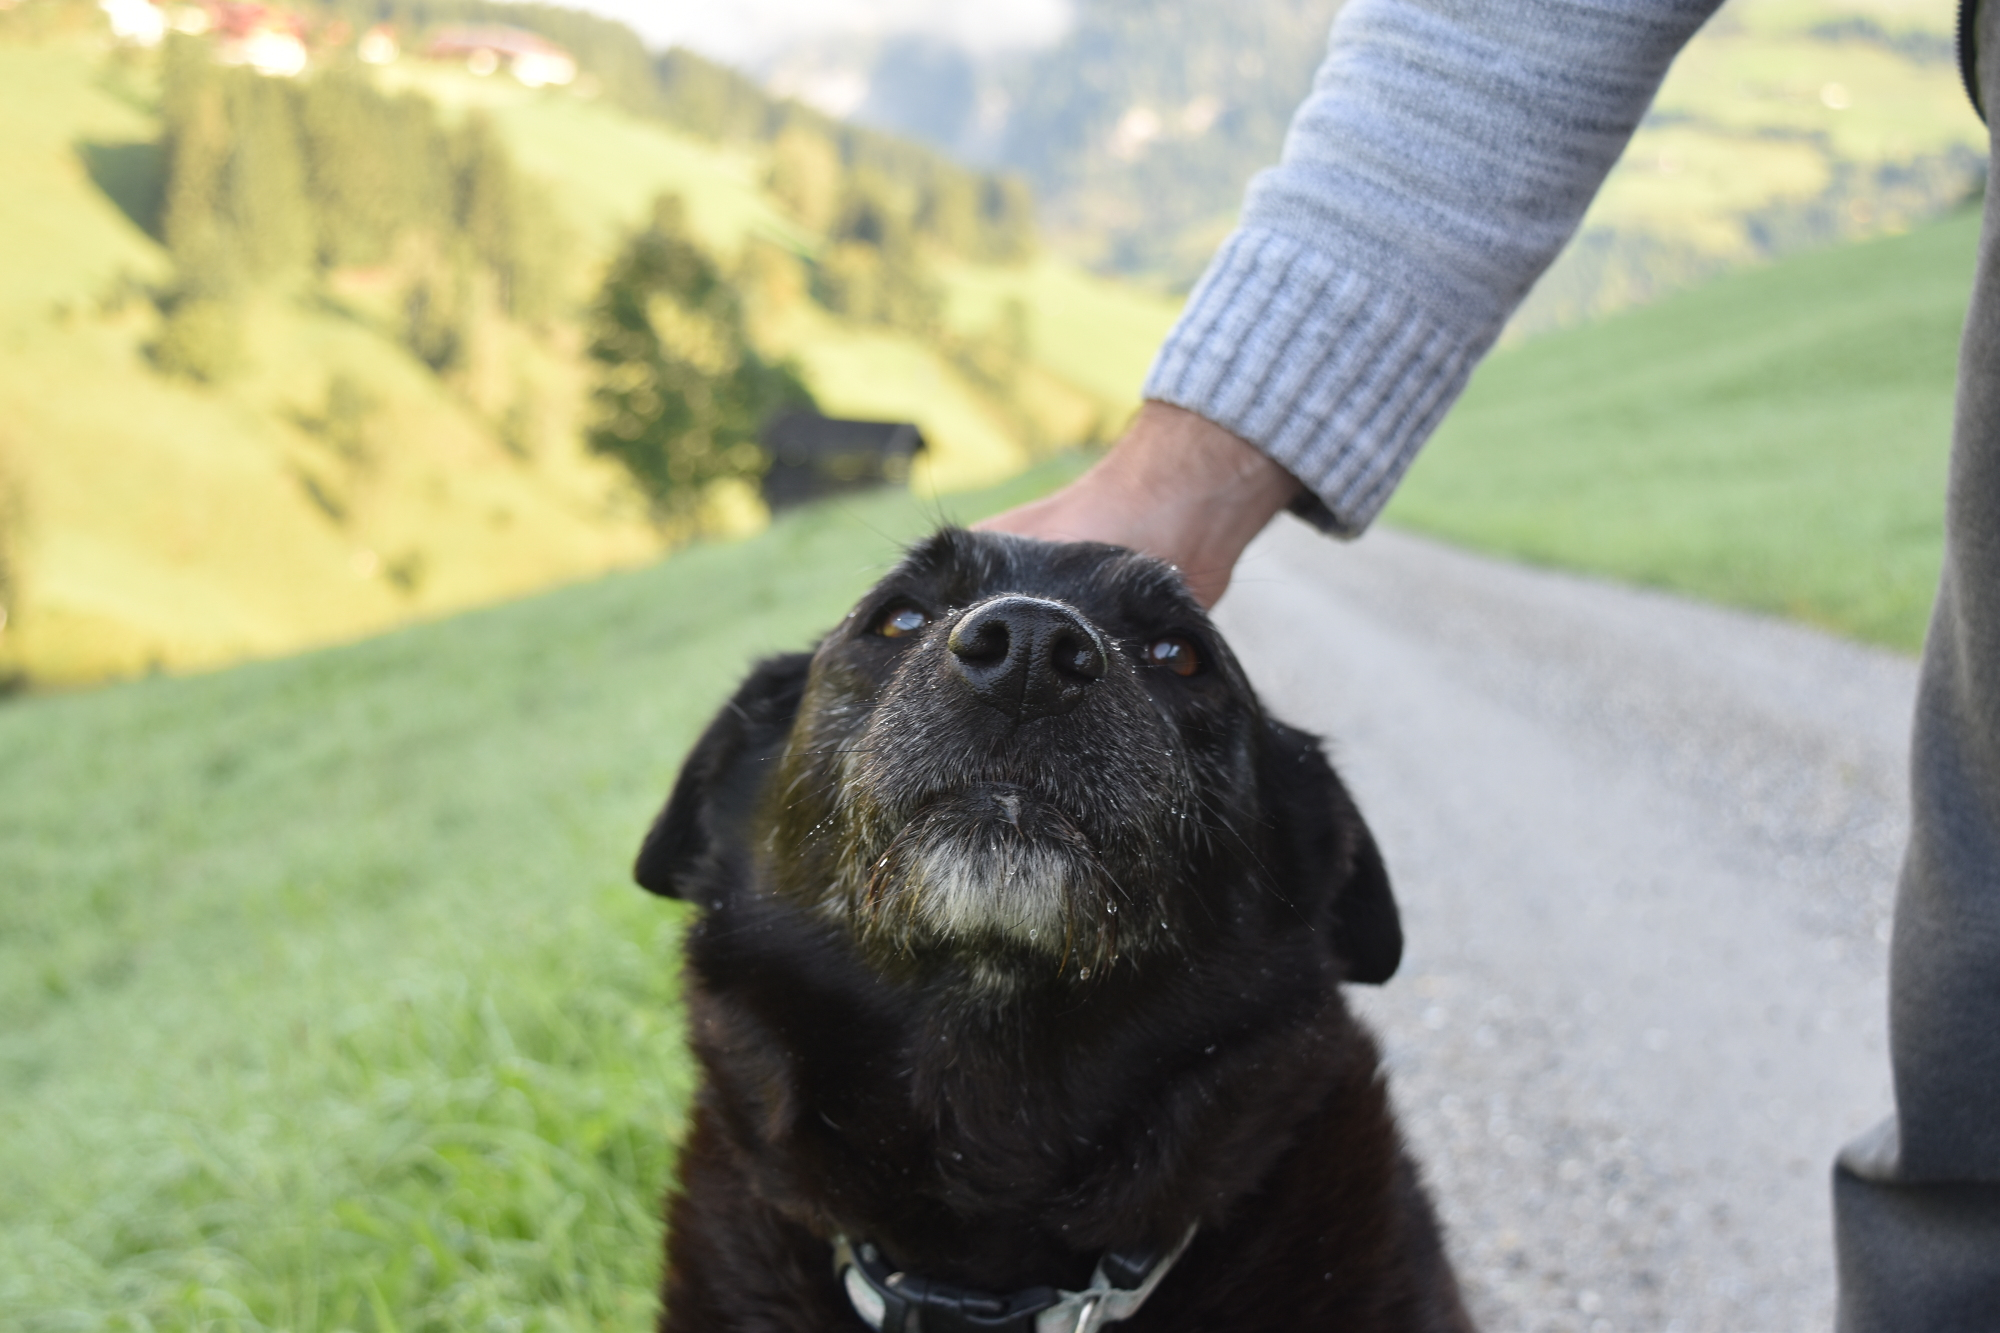 meet Ördög, our furry co-worker and companion #austrianvibes #personal #dog